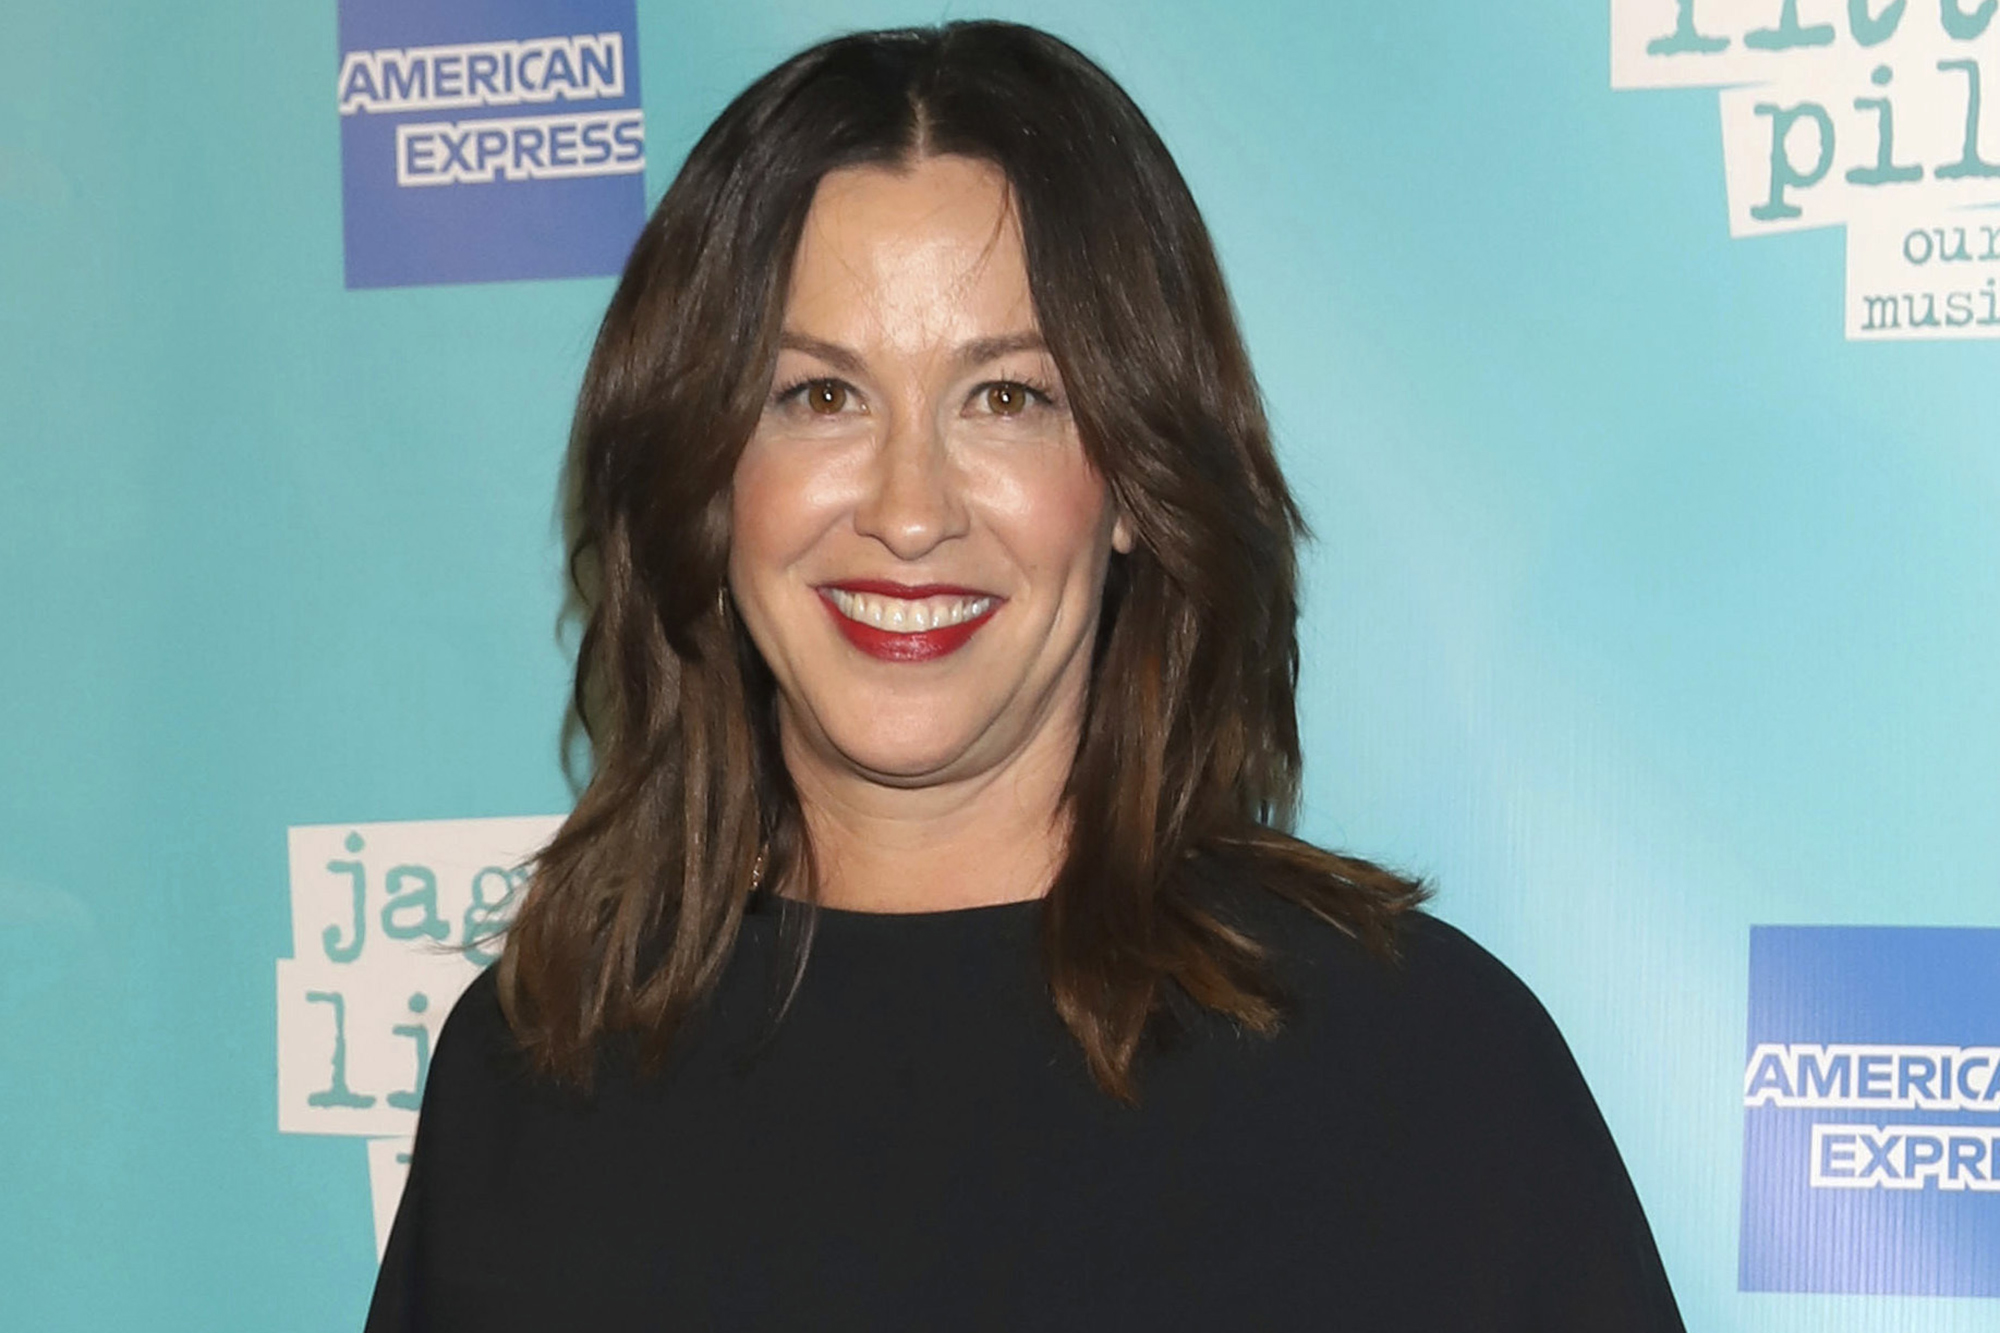 """Singer Alanis Morissette condemned the new documentary about her life, """"Jagged,"""" hours before it premiered at the Toronto International Film Festival."""